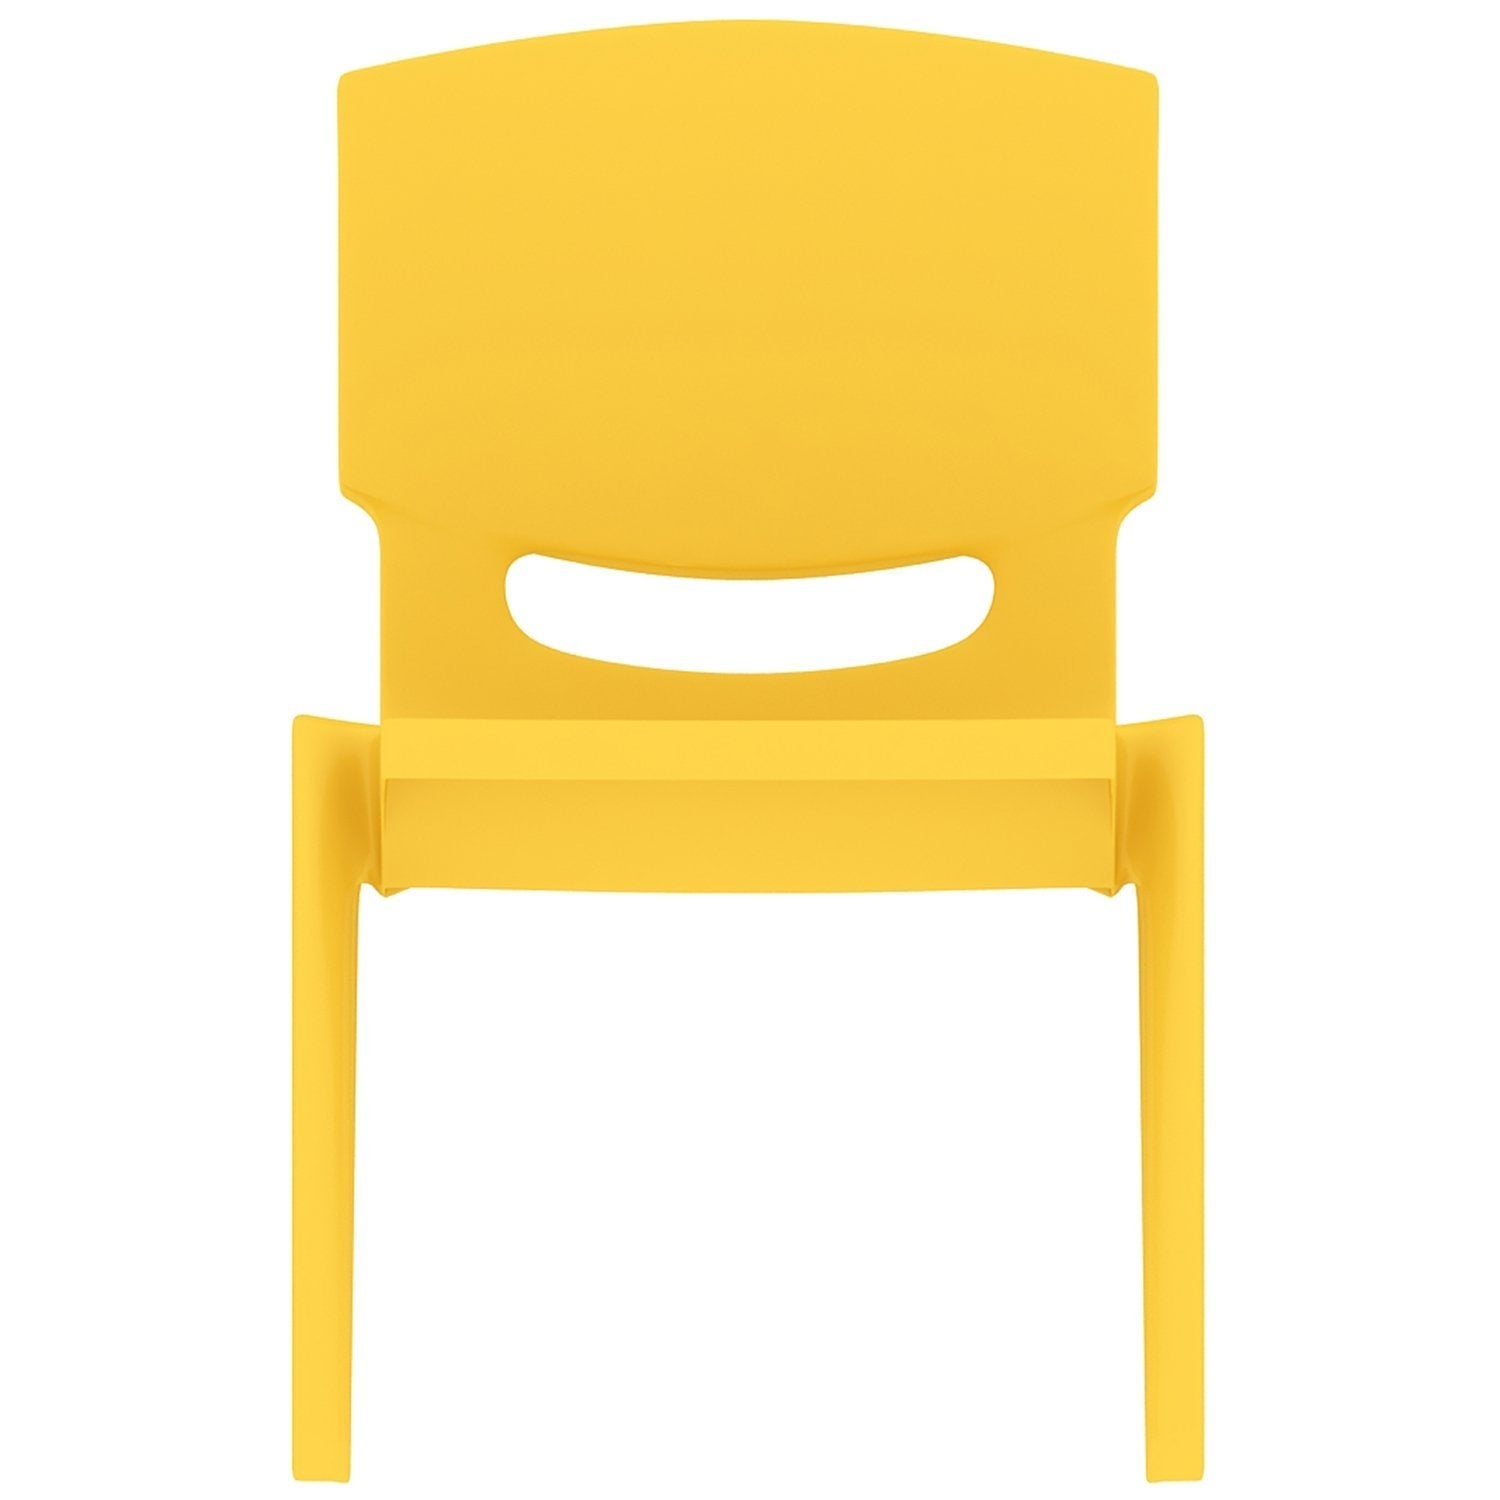 About A Chair 12 Side Chair.Shop 2xhome Yellow Kids Size Plastic Side Chair 12 Seat Height